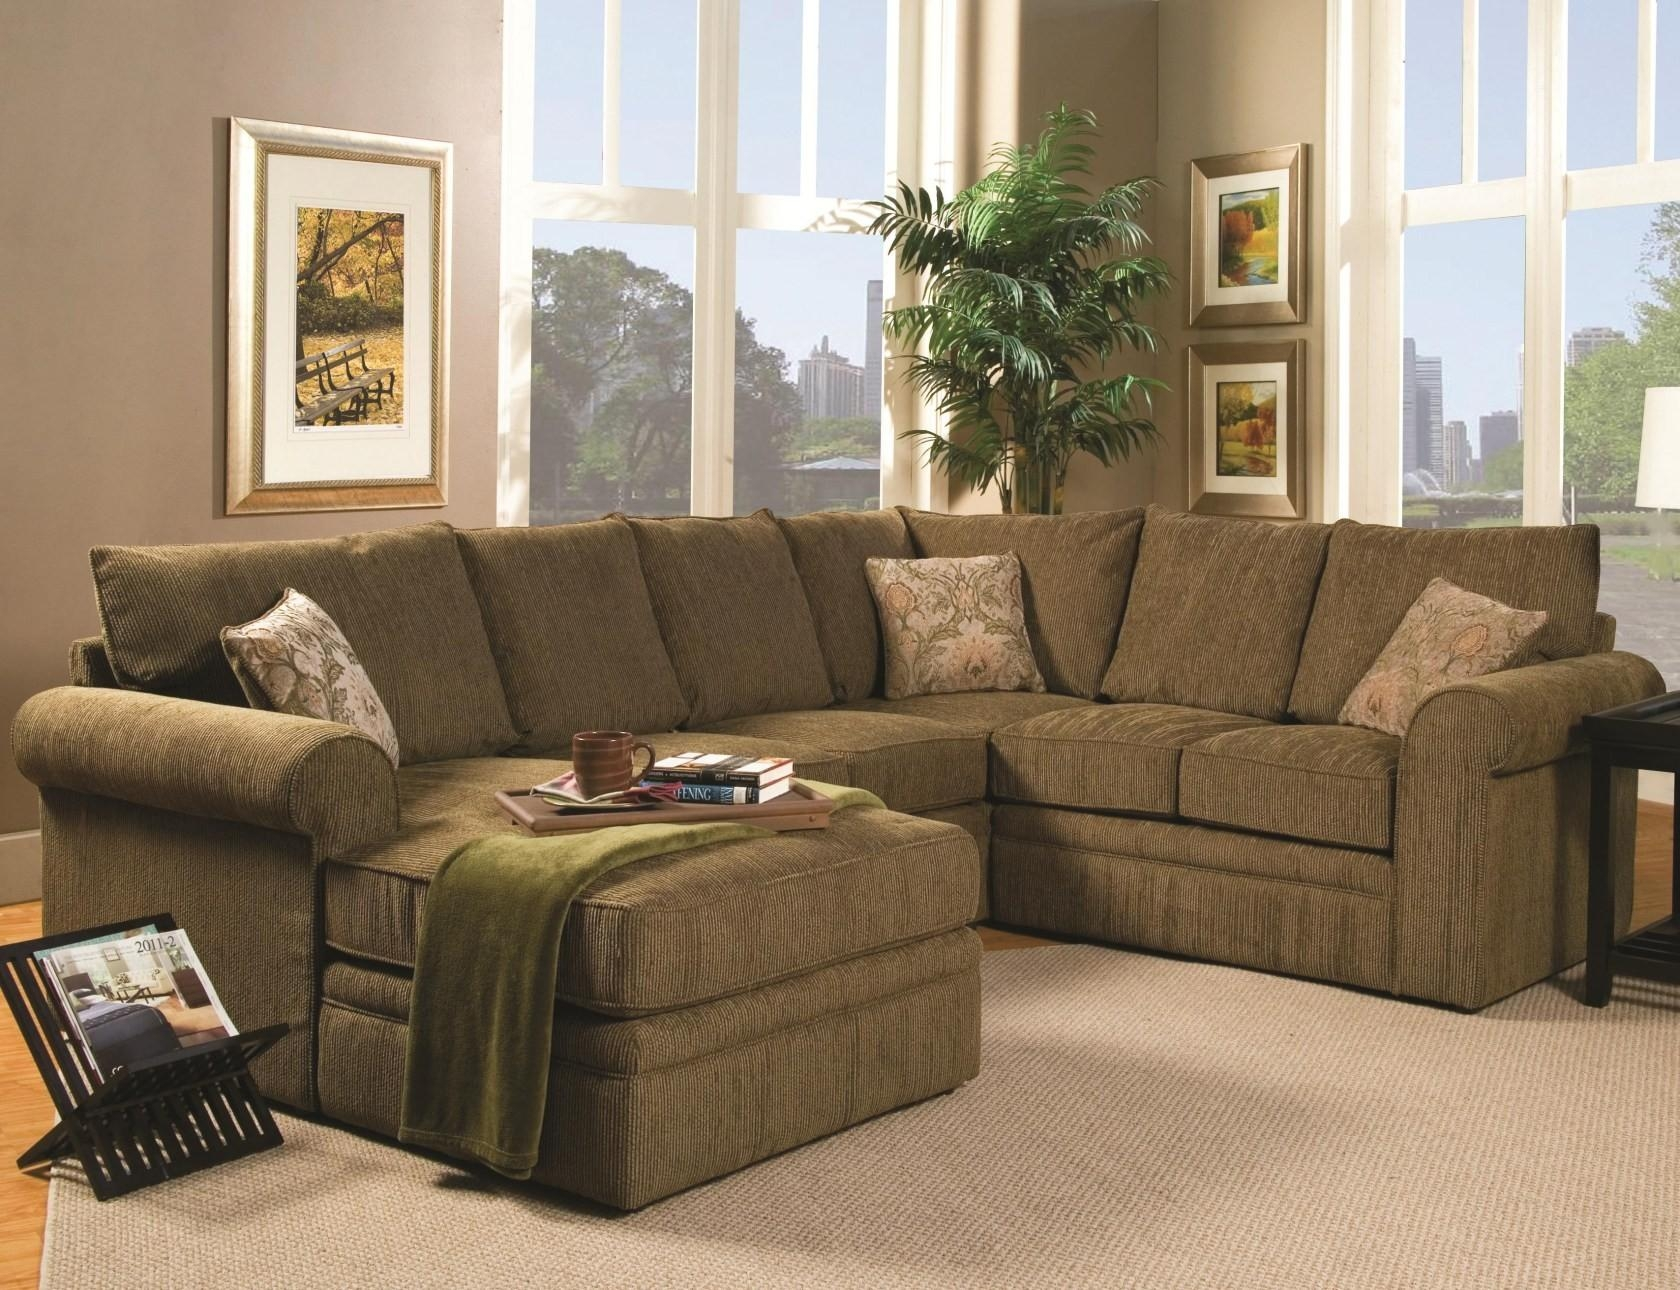 Furniture: Luxury U Shaped Sectional Sofa For Living Room Inside Green Leather Sectional Sofas (View 16 of 20)